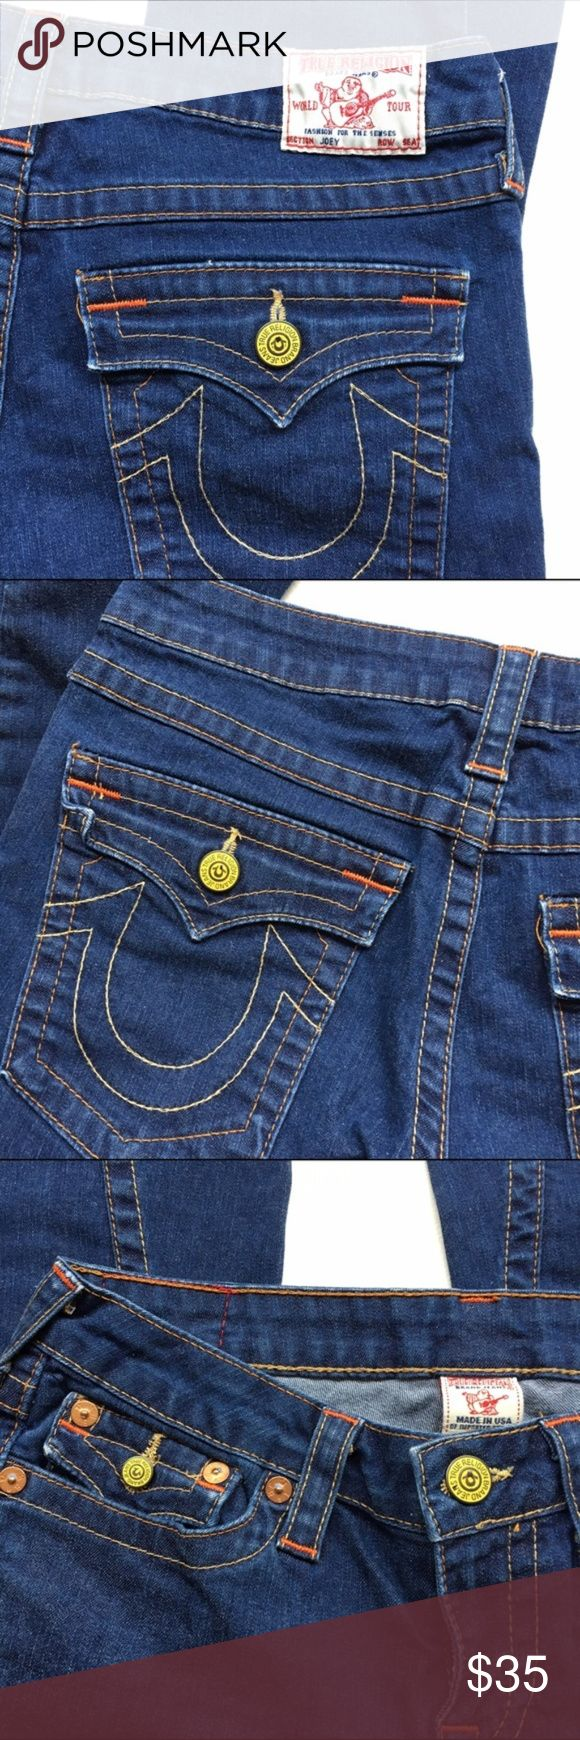 "TRUE RELIGIAN JEANS Twisted flare jeans. Model name : JOEY. Neon colored buttons. Classic True Religion low rise style featuring the signature multi thread combo and back flap pockets embellished with the iconic ""U"" logo. Inseam 30"". Weekend SALE. Price will go up week day. CATEGORY True Religion Jeans Flare & Wide Leg"